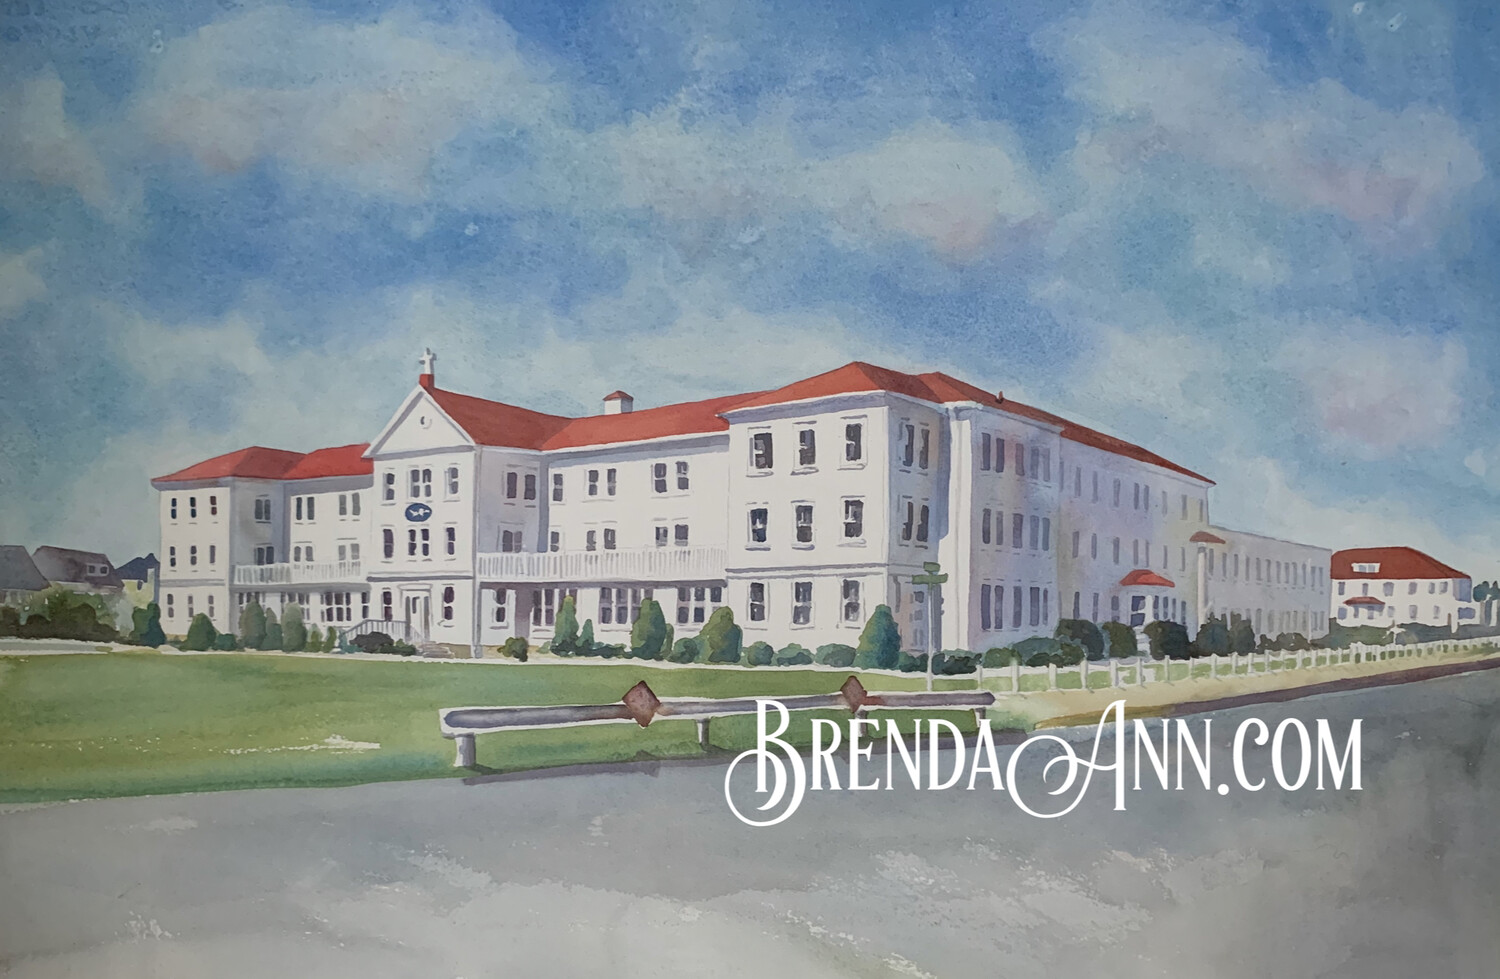 Villa Maria By the Sea in Stone Harbor, NJ - Hand Signed Archival Watercolor Print